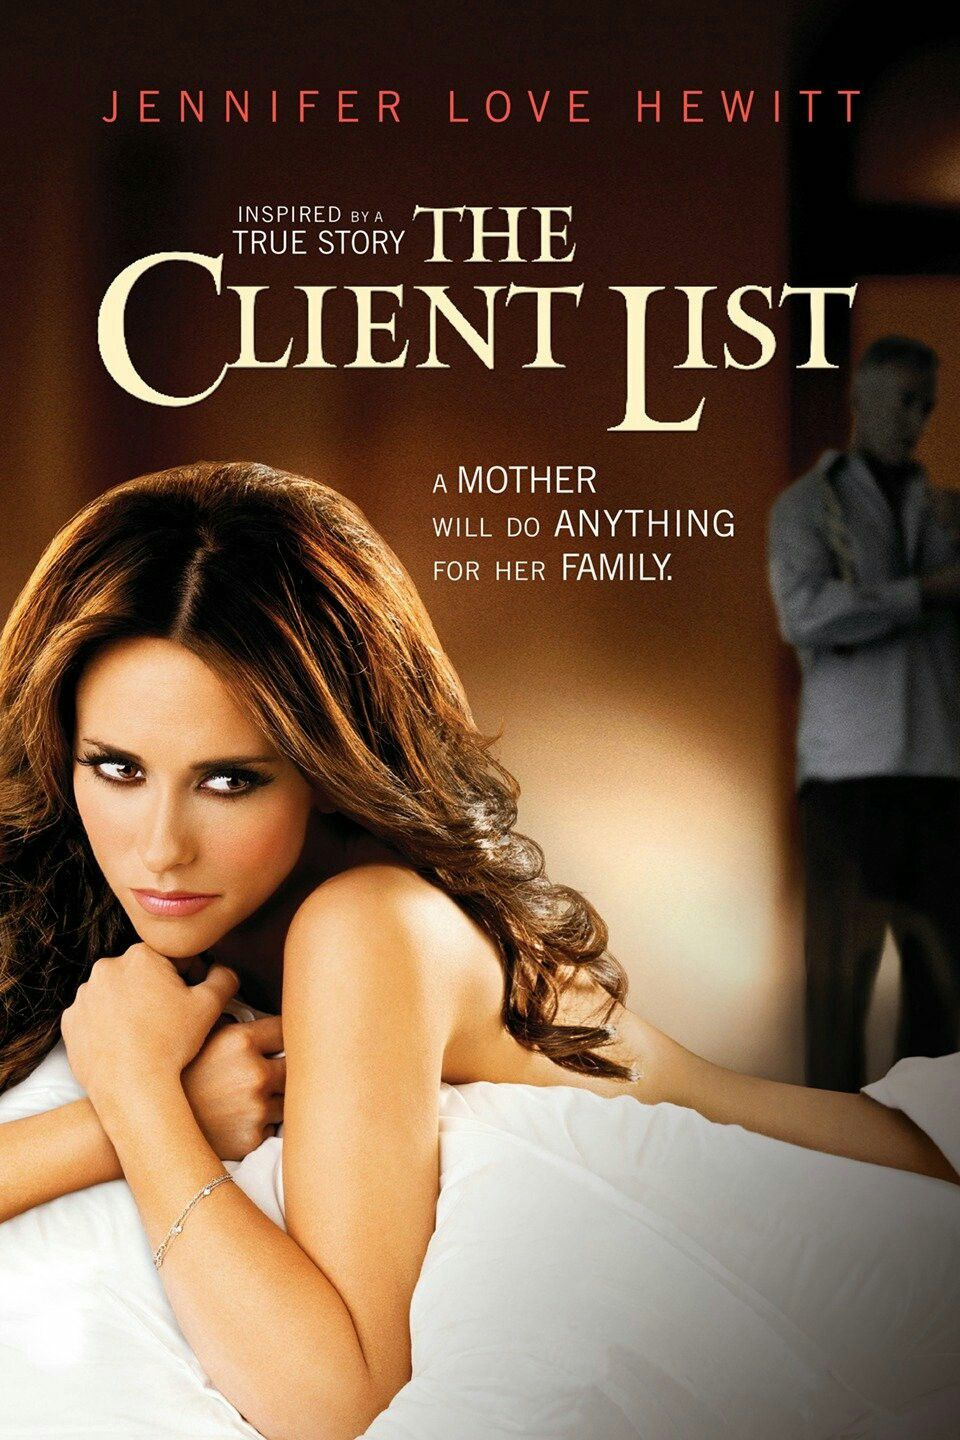 Pin By Sabri Ledesma On Avion Jennifer Love Hewitt The Client List Jennifer Love